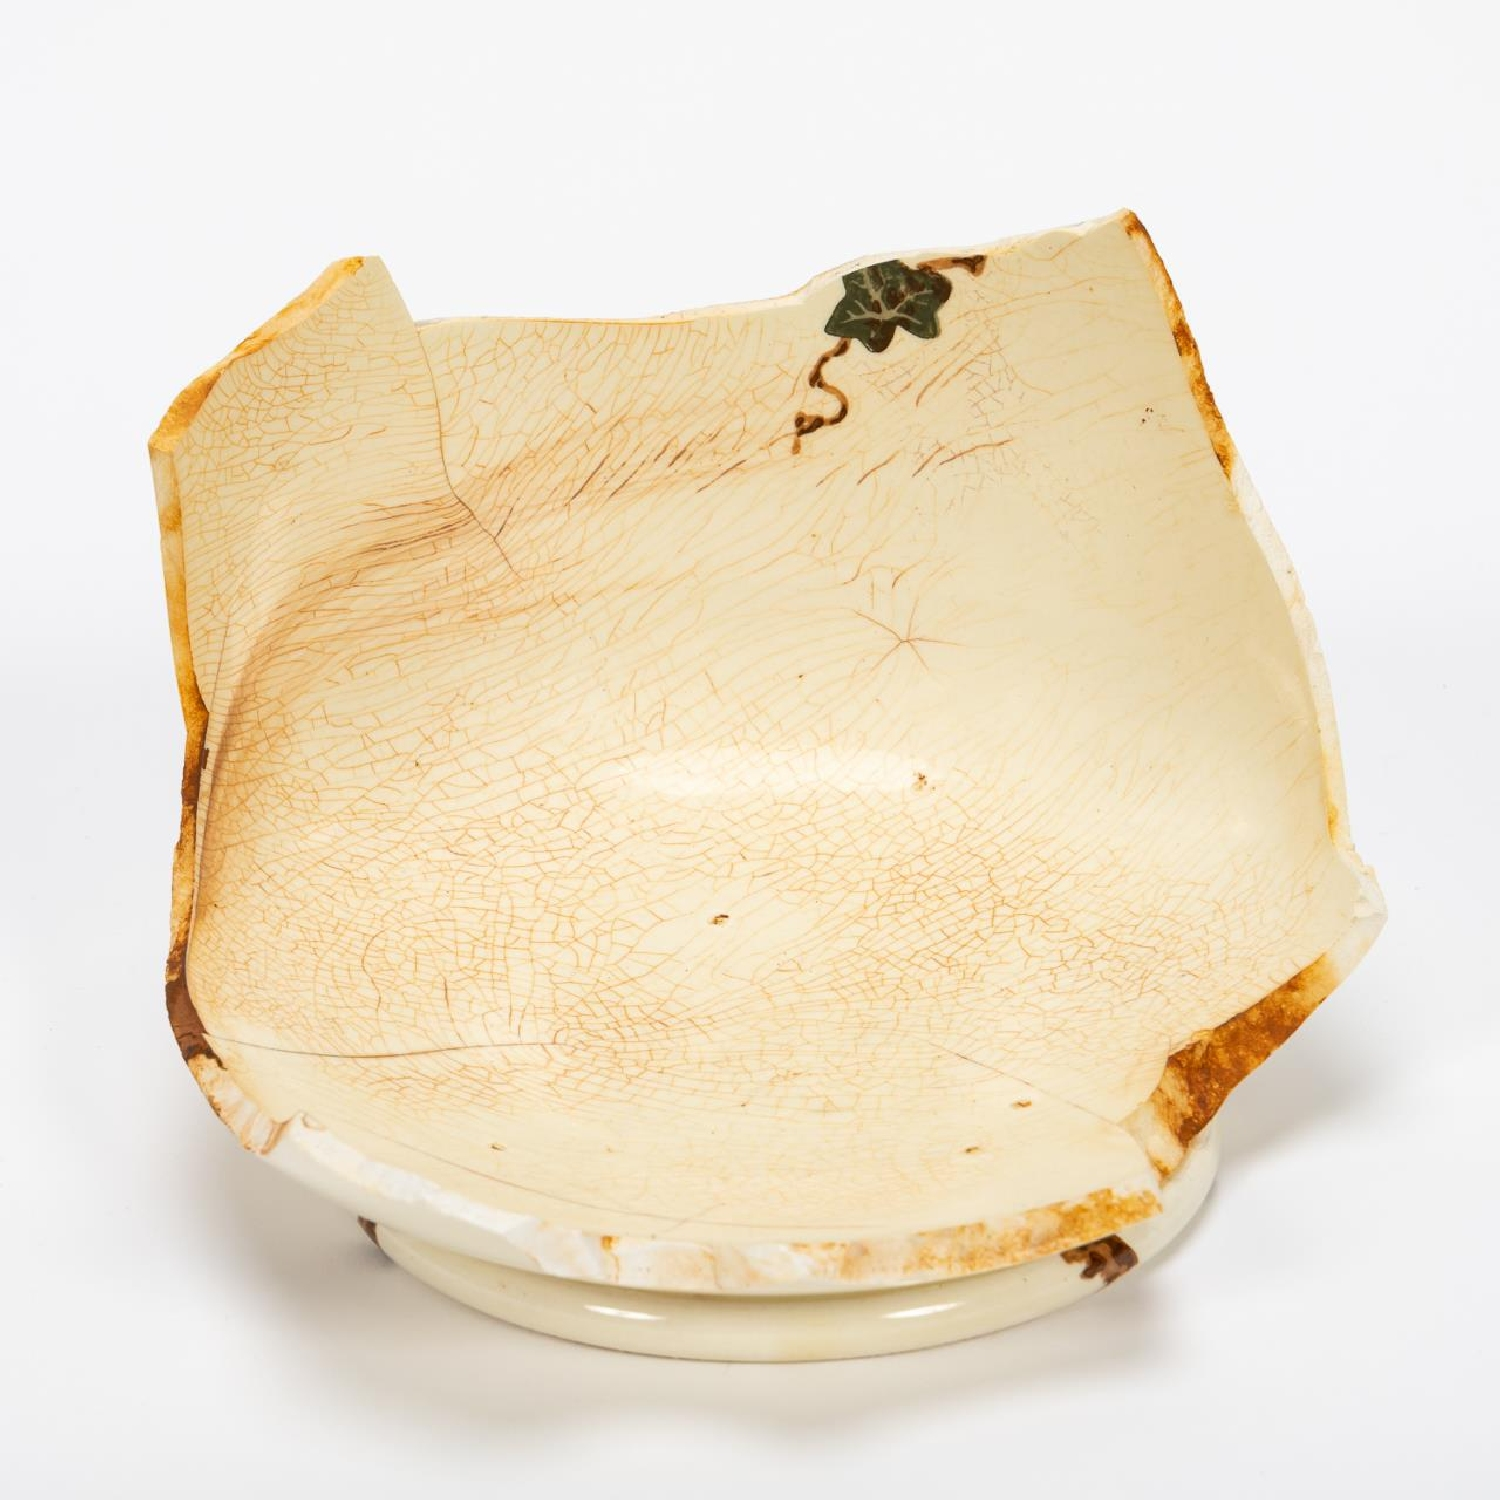 RMS CARPATHIA, SALVAGED PARTIAL IVY CHAMBER POT - Image 3 of 7